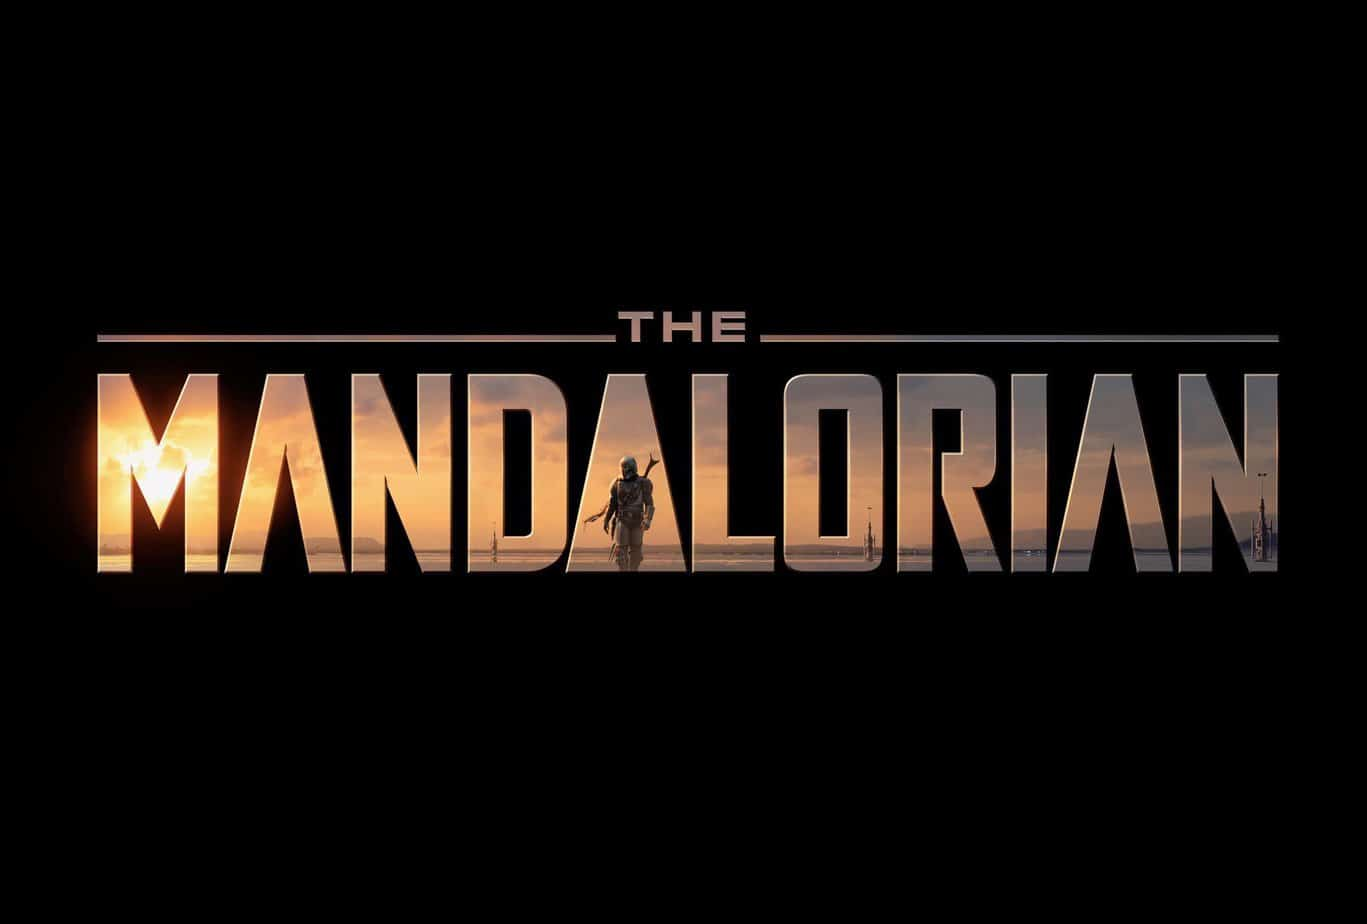 The Mandalorian Poster - Star Wars Celebration - Logo